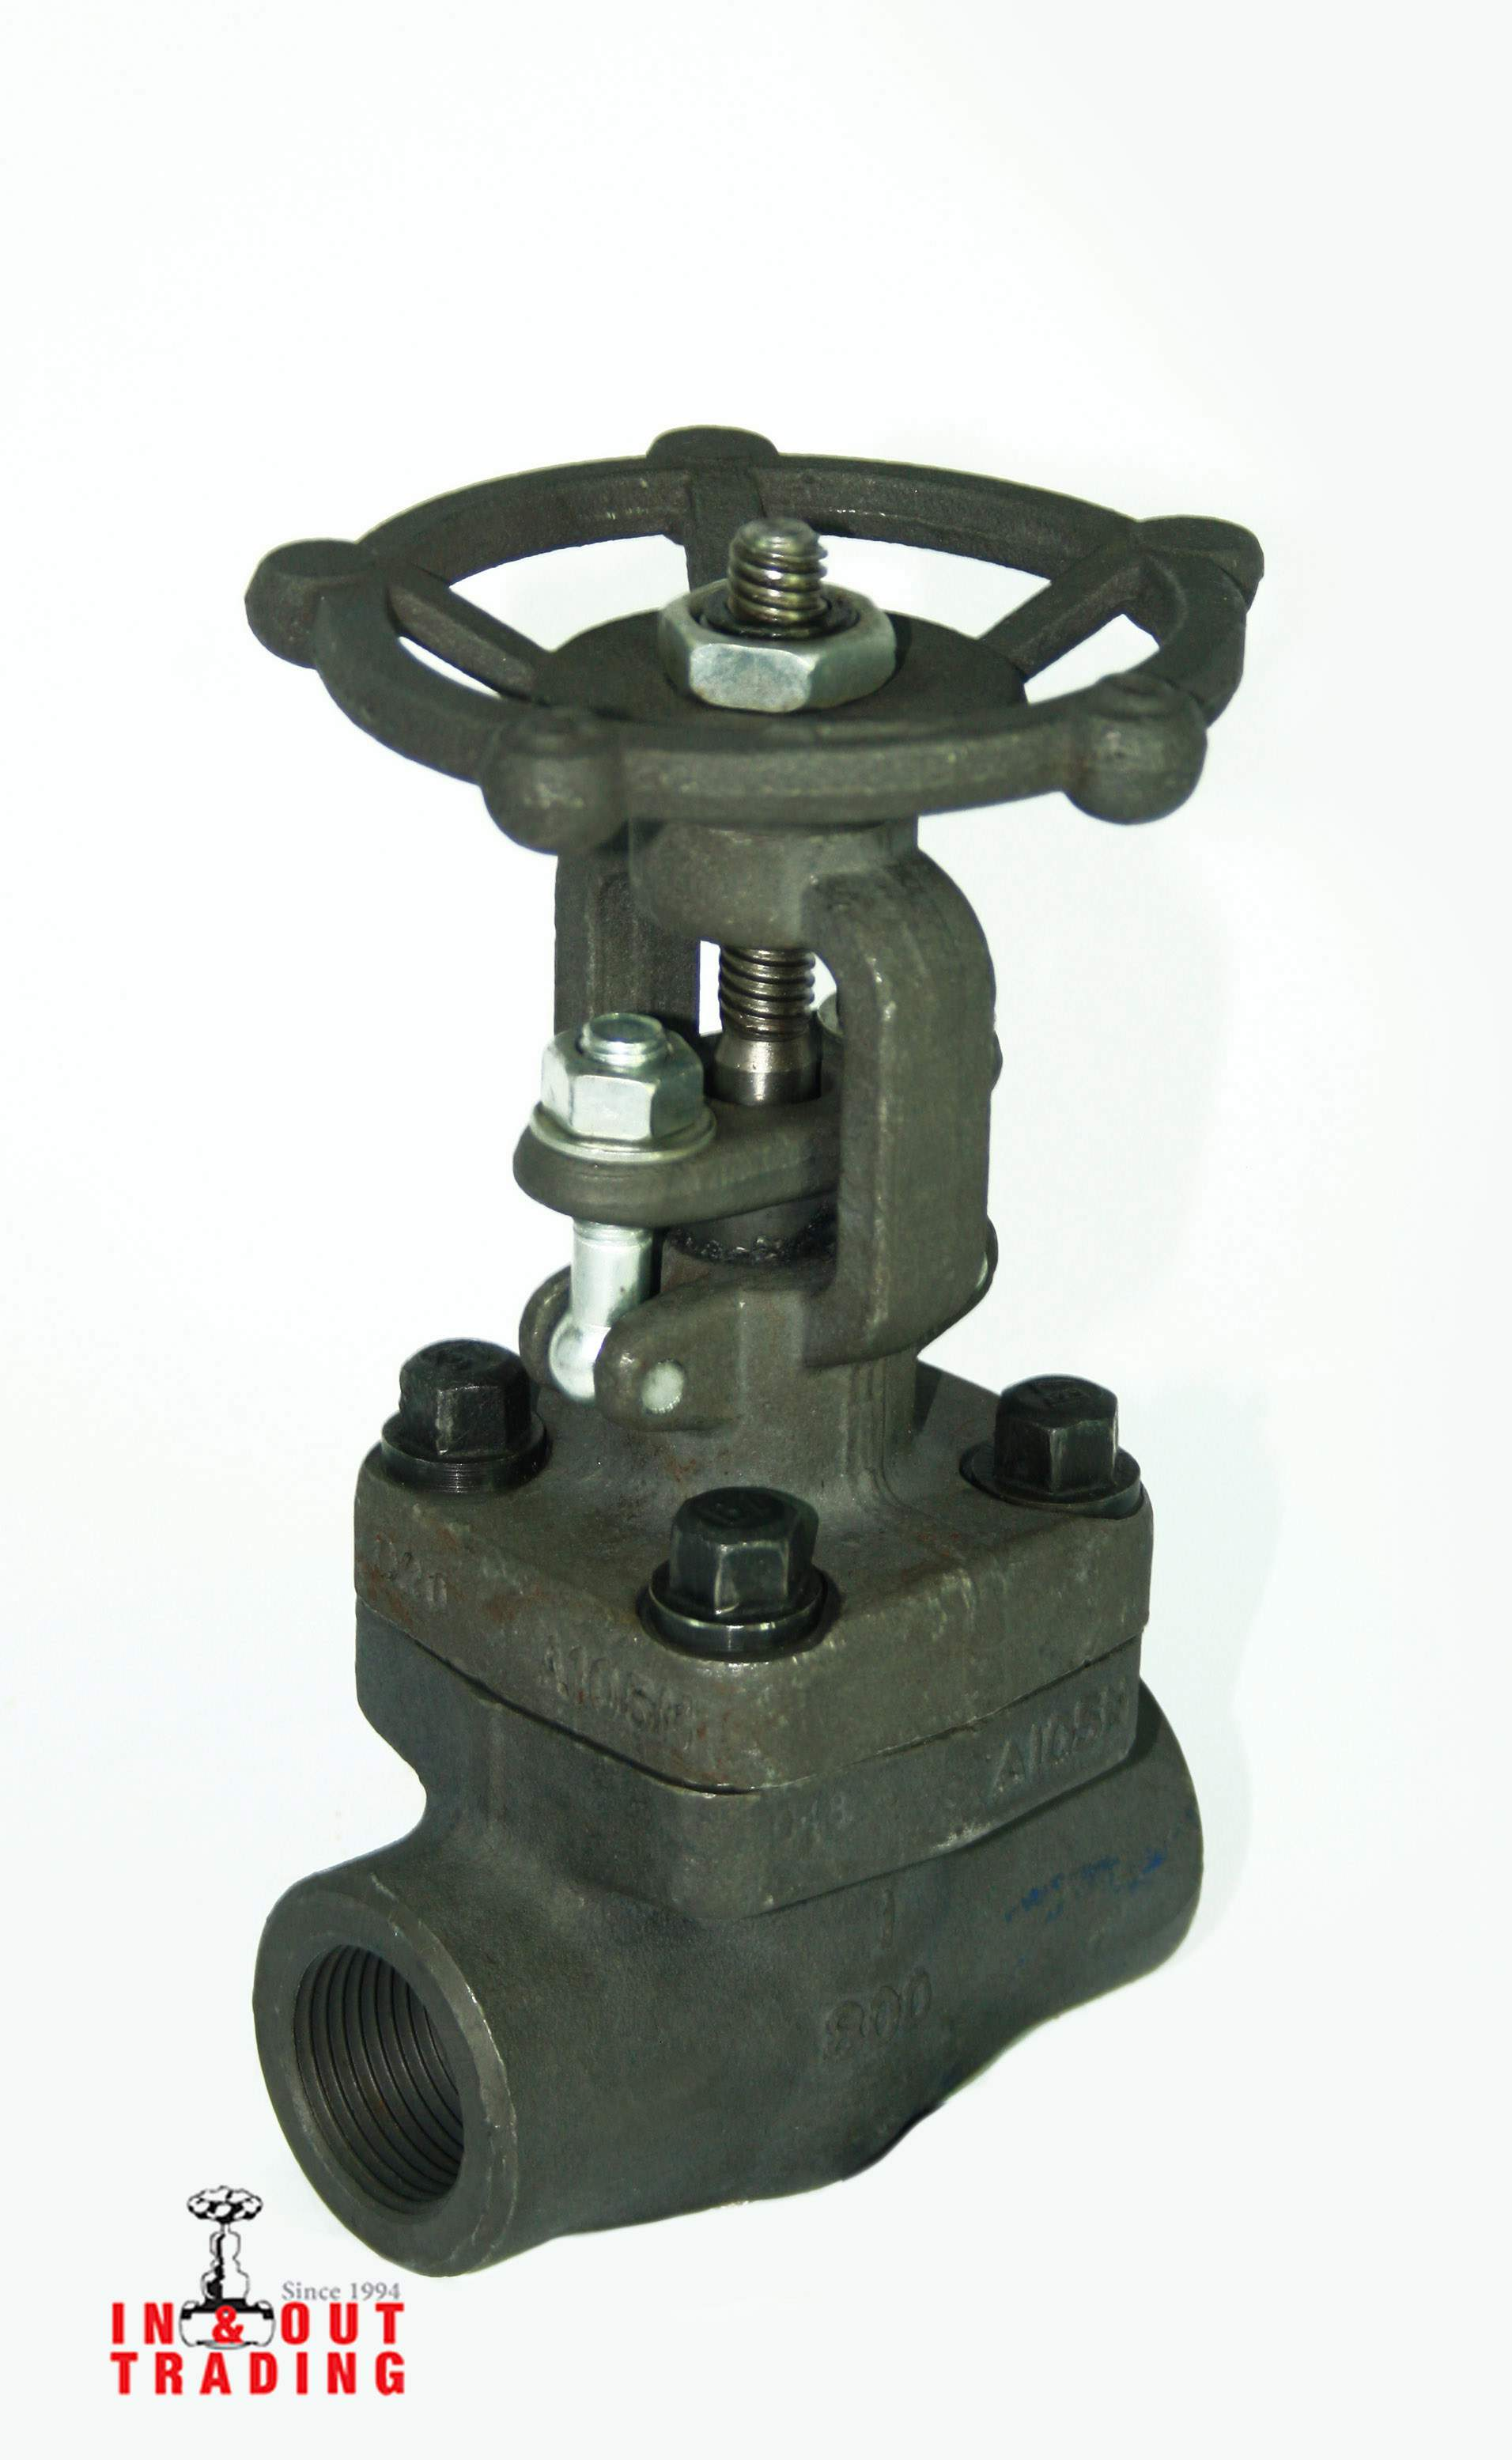 'ANIX - A105 FORGED STEEL GLOBE VALVE 800PSI'